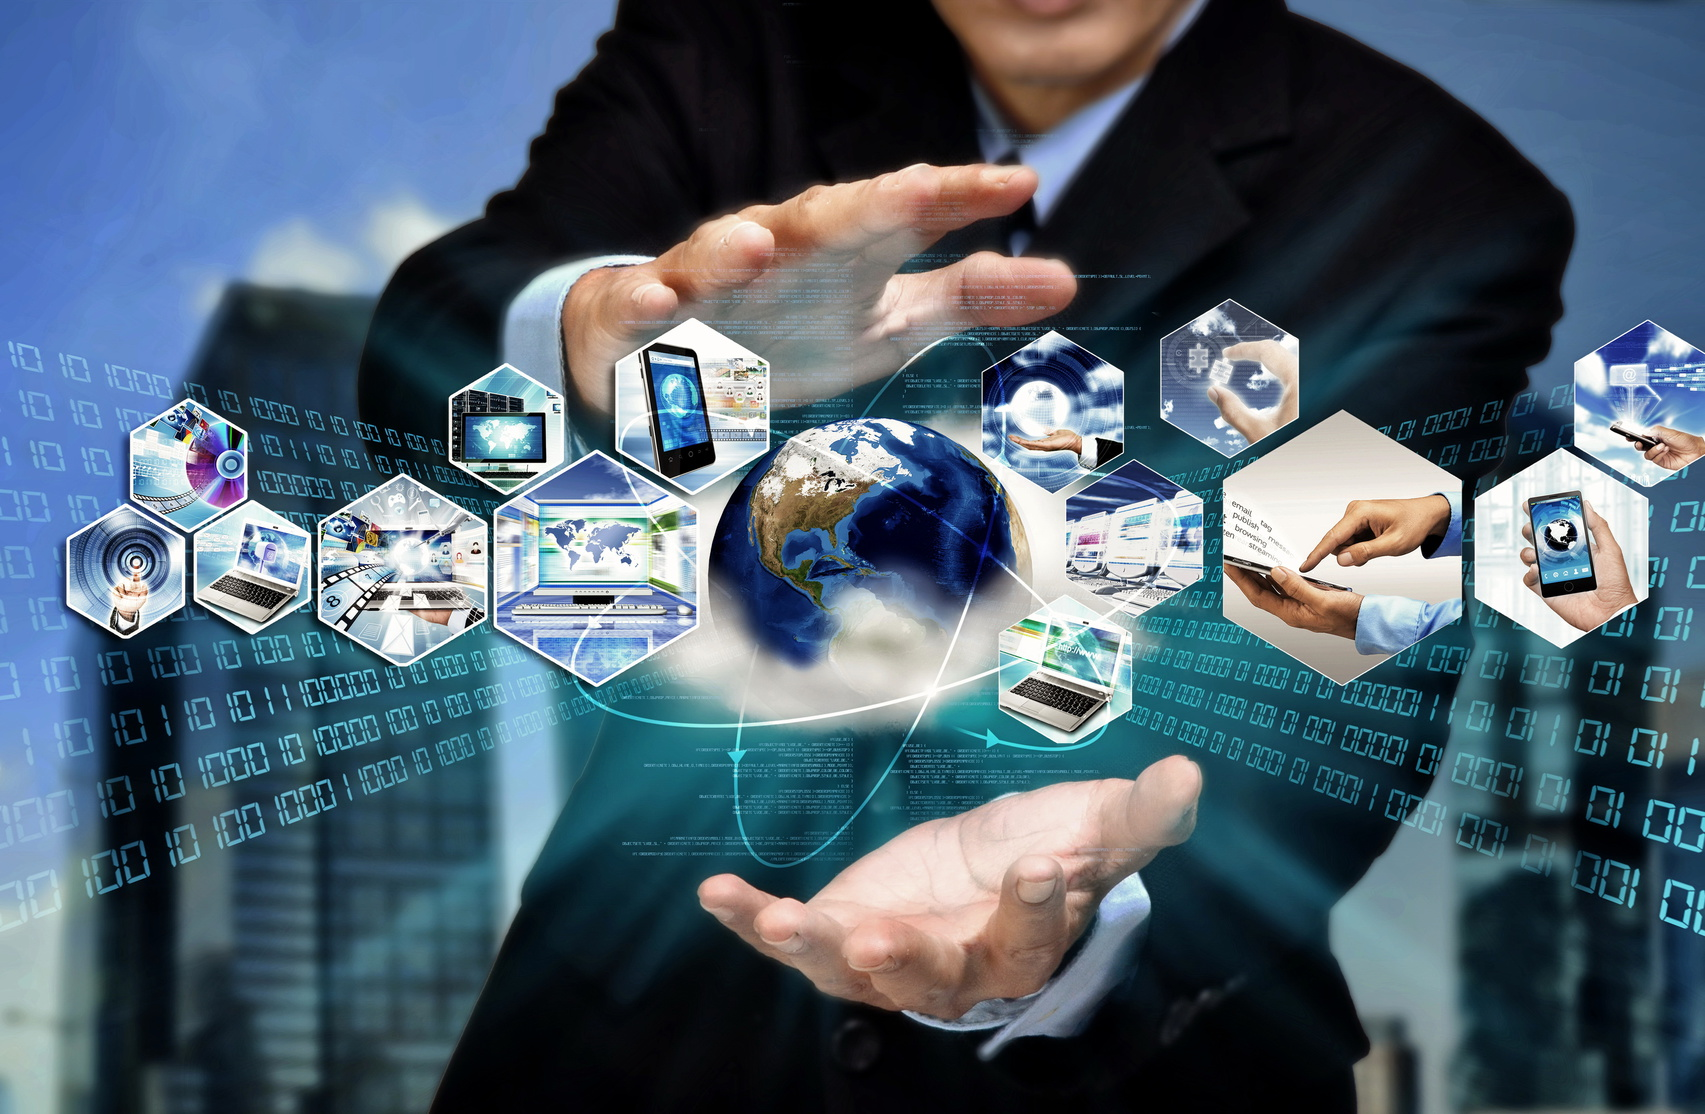 technology business internet driven concept smartphone magento would tech allbusiness multimedia sharing pwa why